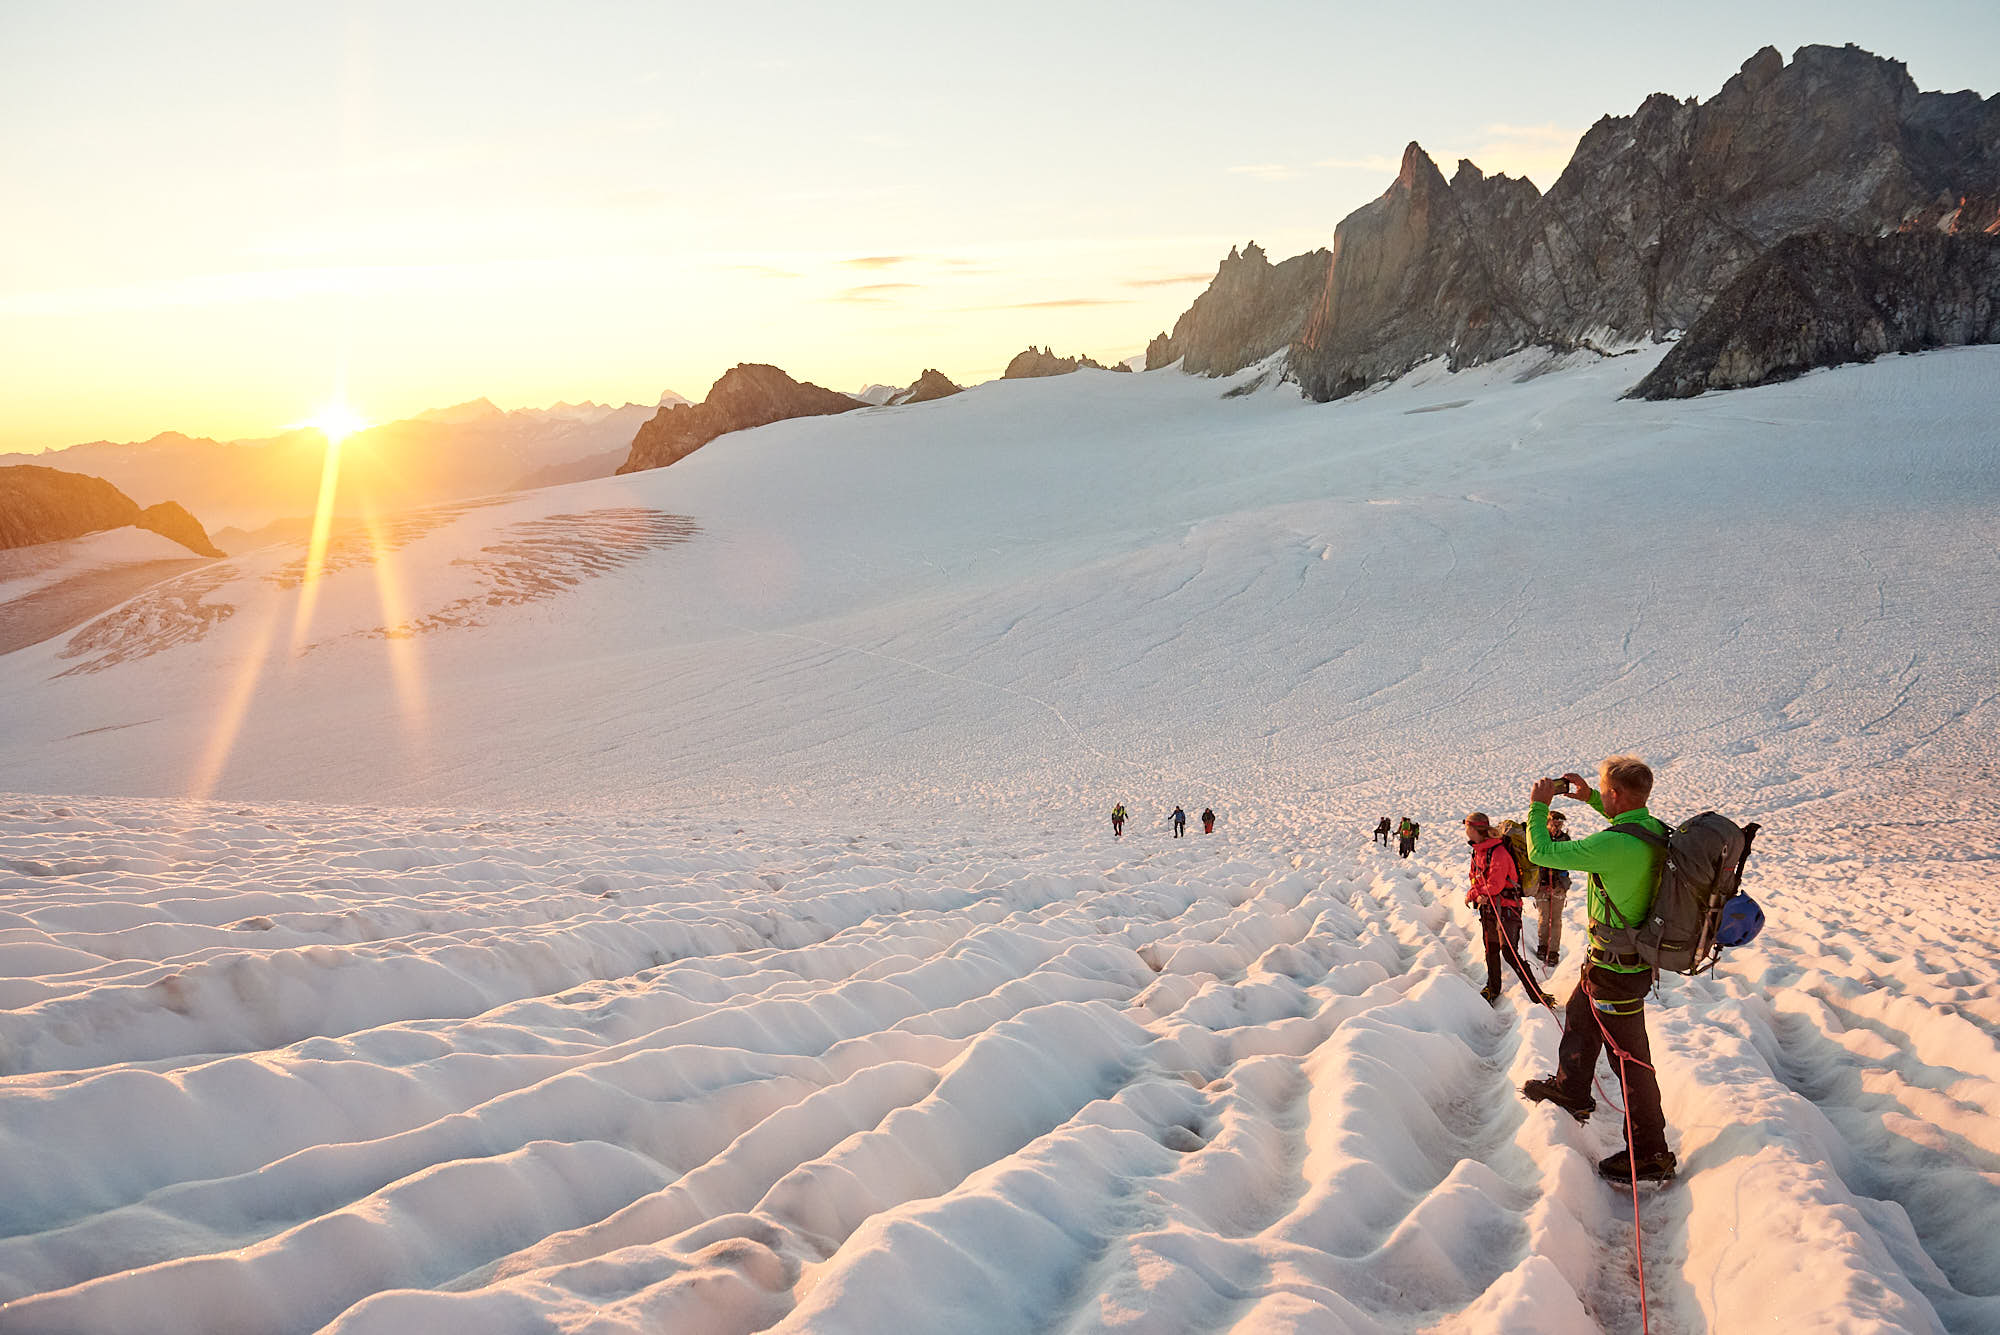 Alpinists enjoying a sunrise high in the Swiss Alps